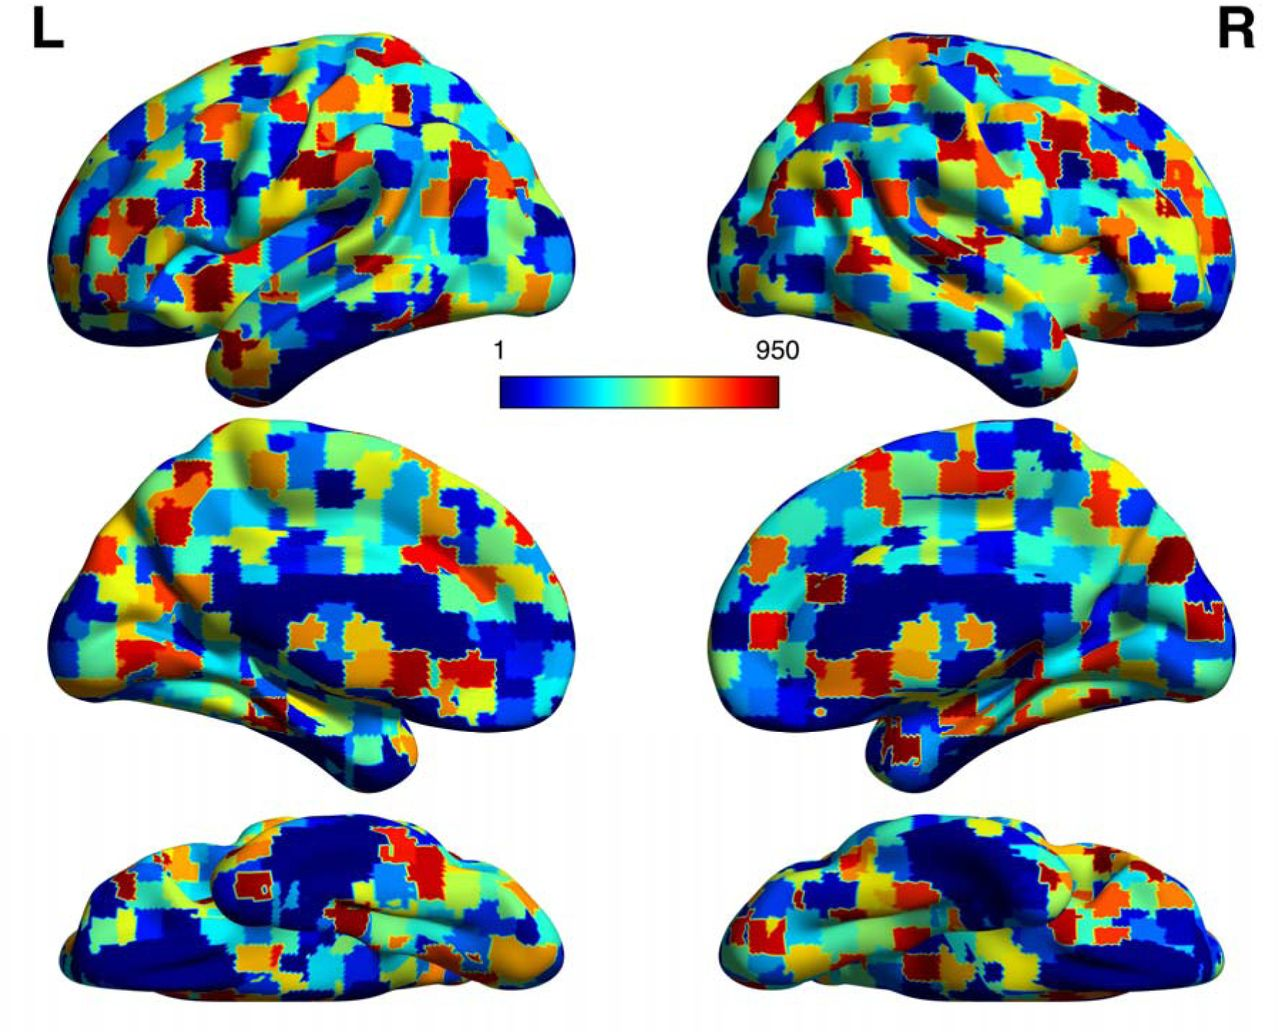 Data-Driven Extraction of a Nested Structure of Human Cognition